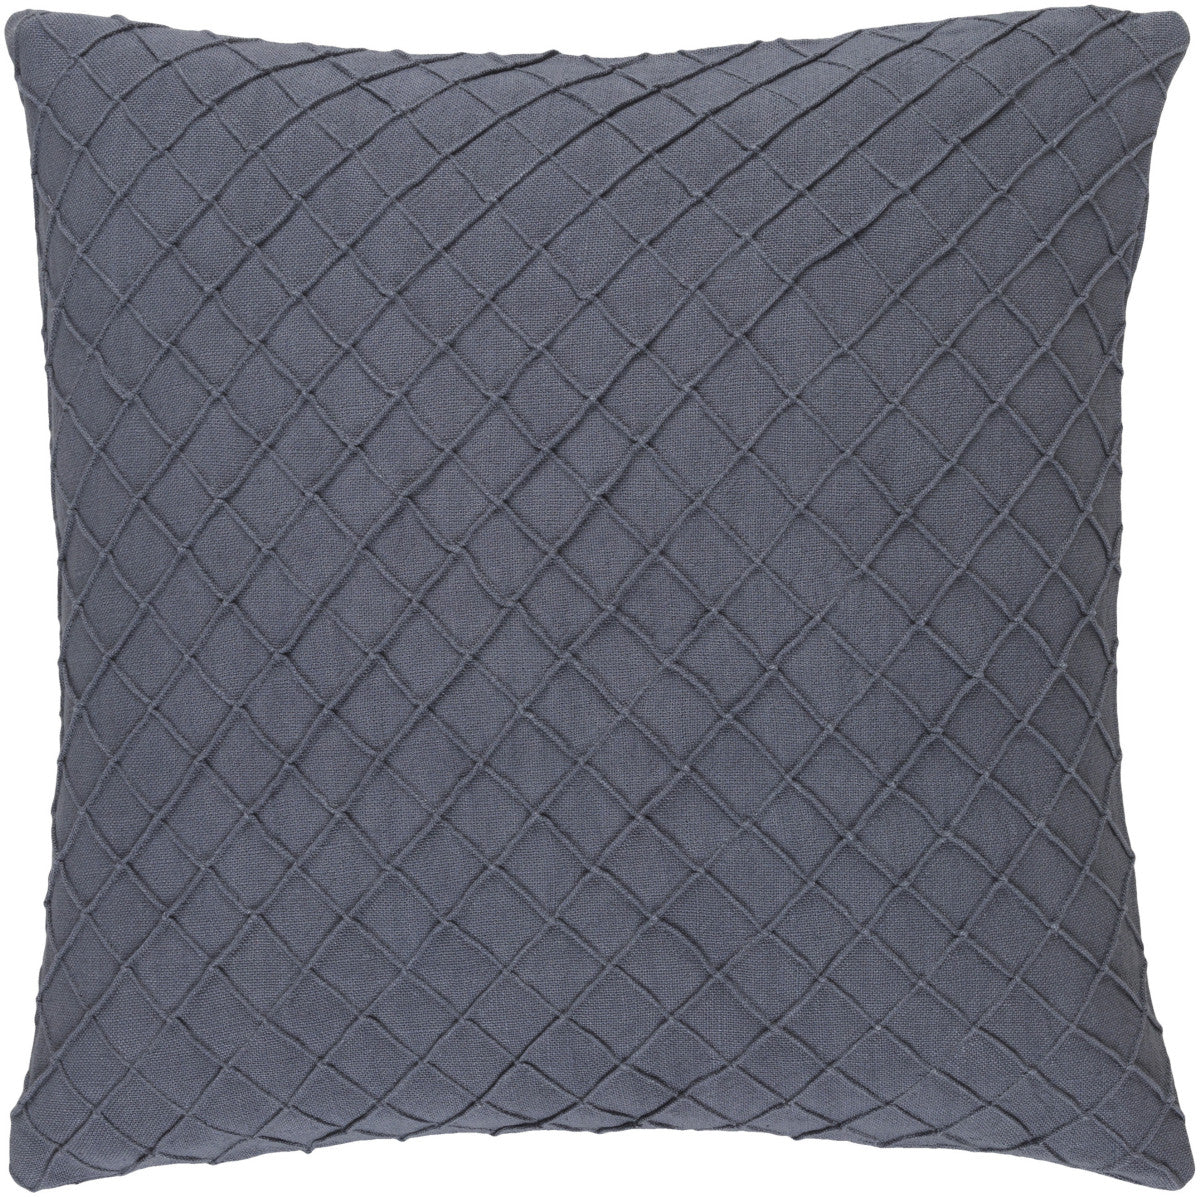 Surya Wright WR002 Pillow